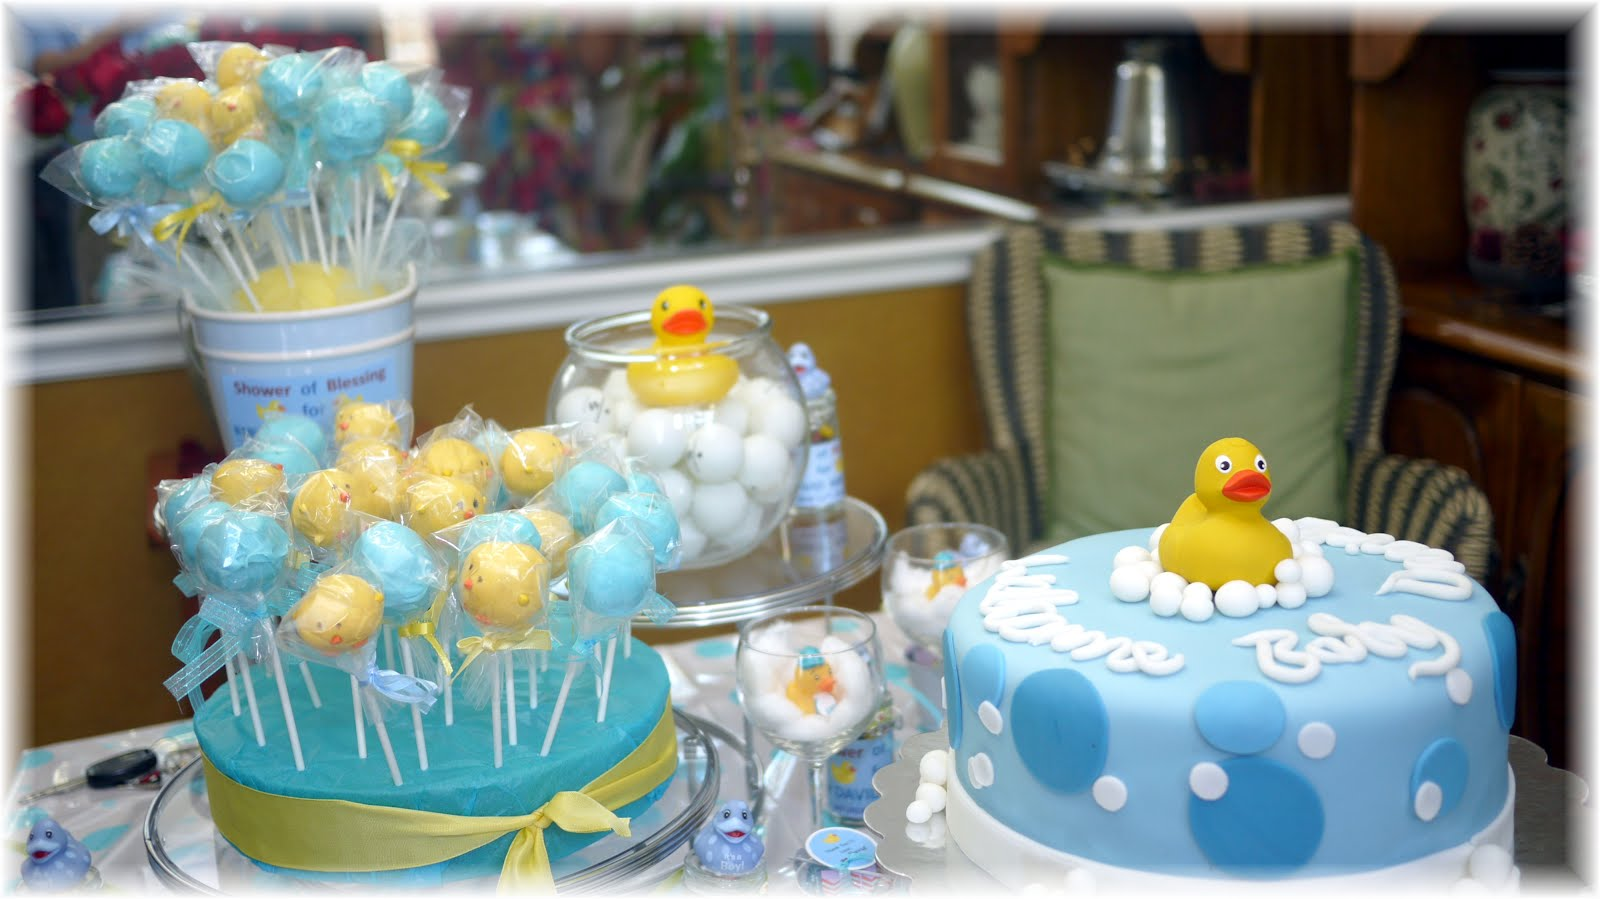 Maricar 39 s baby shower welcome baby david chungry girl for Baby decoration ideas for shower